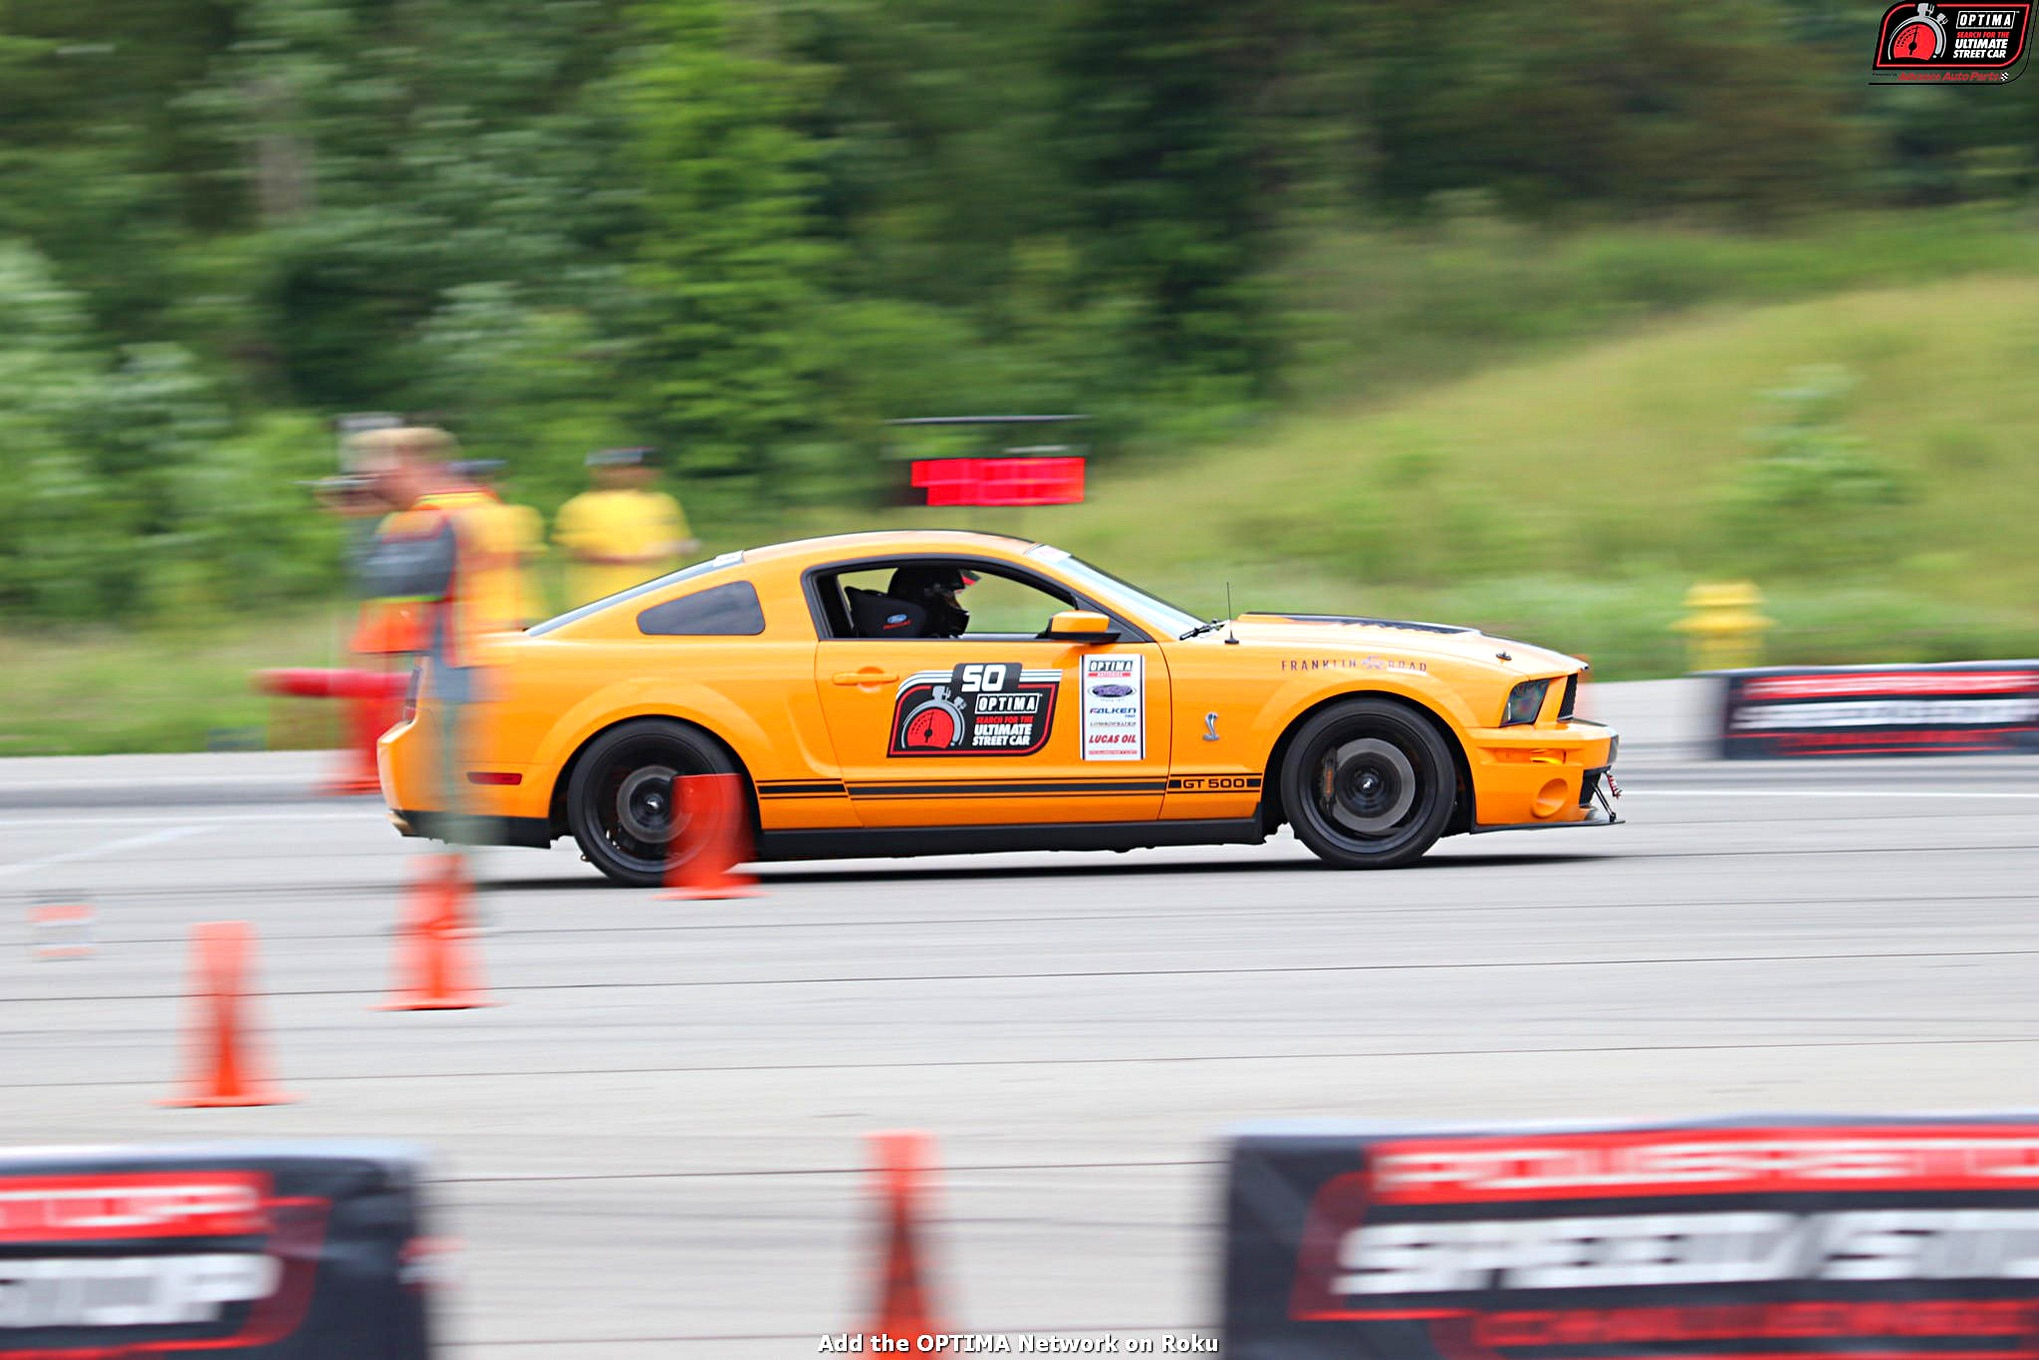 MMFF Jonathan Blevins 2008 Ford Mustang DriveOPTIMA NCM Motorsports Park 2018 87 009